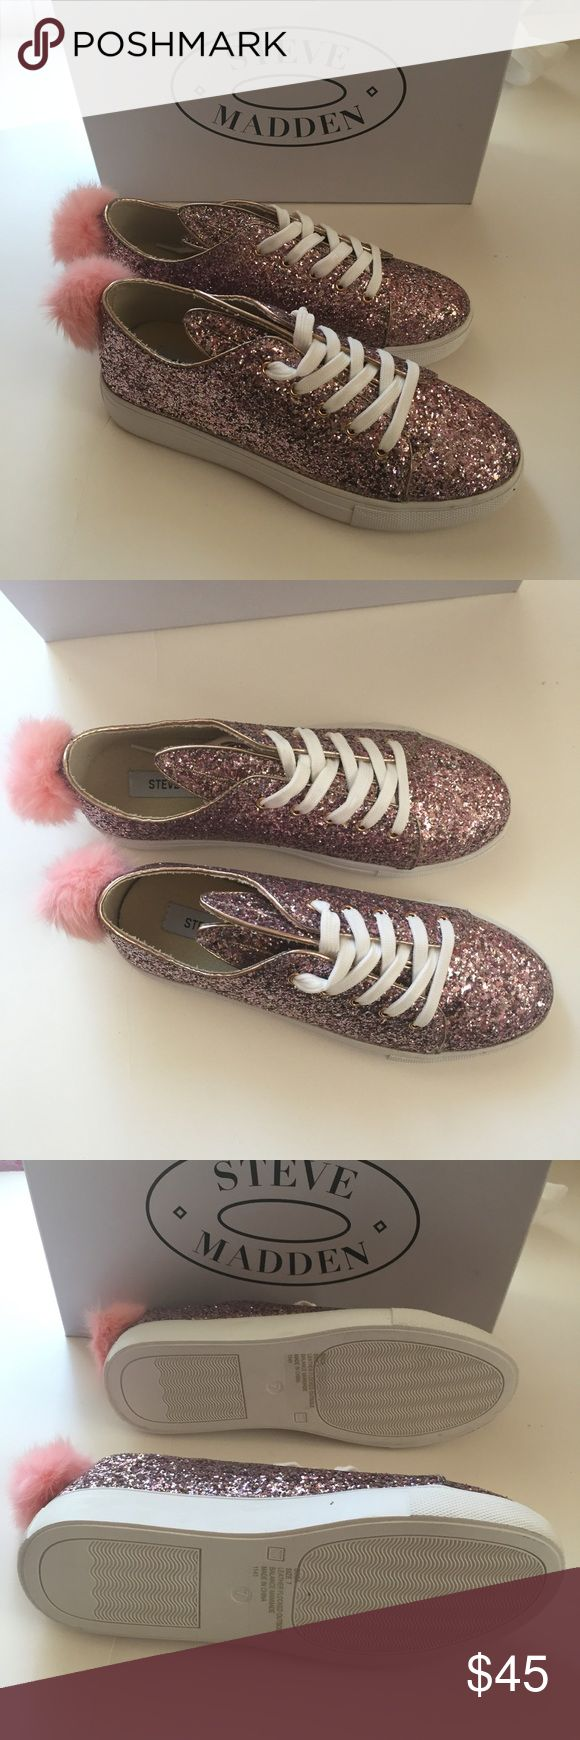 New Rare Steve Madden Bunny Shoes Size 7.0 women's Sparkly glitter Bunny Shoes by Steve Madden. Box included. Brand new. No defects. Never worn. Can be a great Christmas present! I have silver Bunny Shoes as well in a size 7.5 on my page.  #stevemadden #stevemaddenshoes #aldo #betseyjohnson #victoriassecret #vs # pink #victoriassecretpink #calvinklein #windsor #forever21 #abercrombieandfitch #hollister #americaneagle #michaelkors #coach Steve Madden Shoes Sneakers